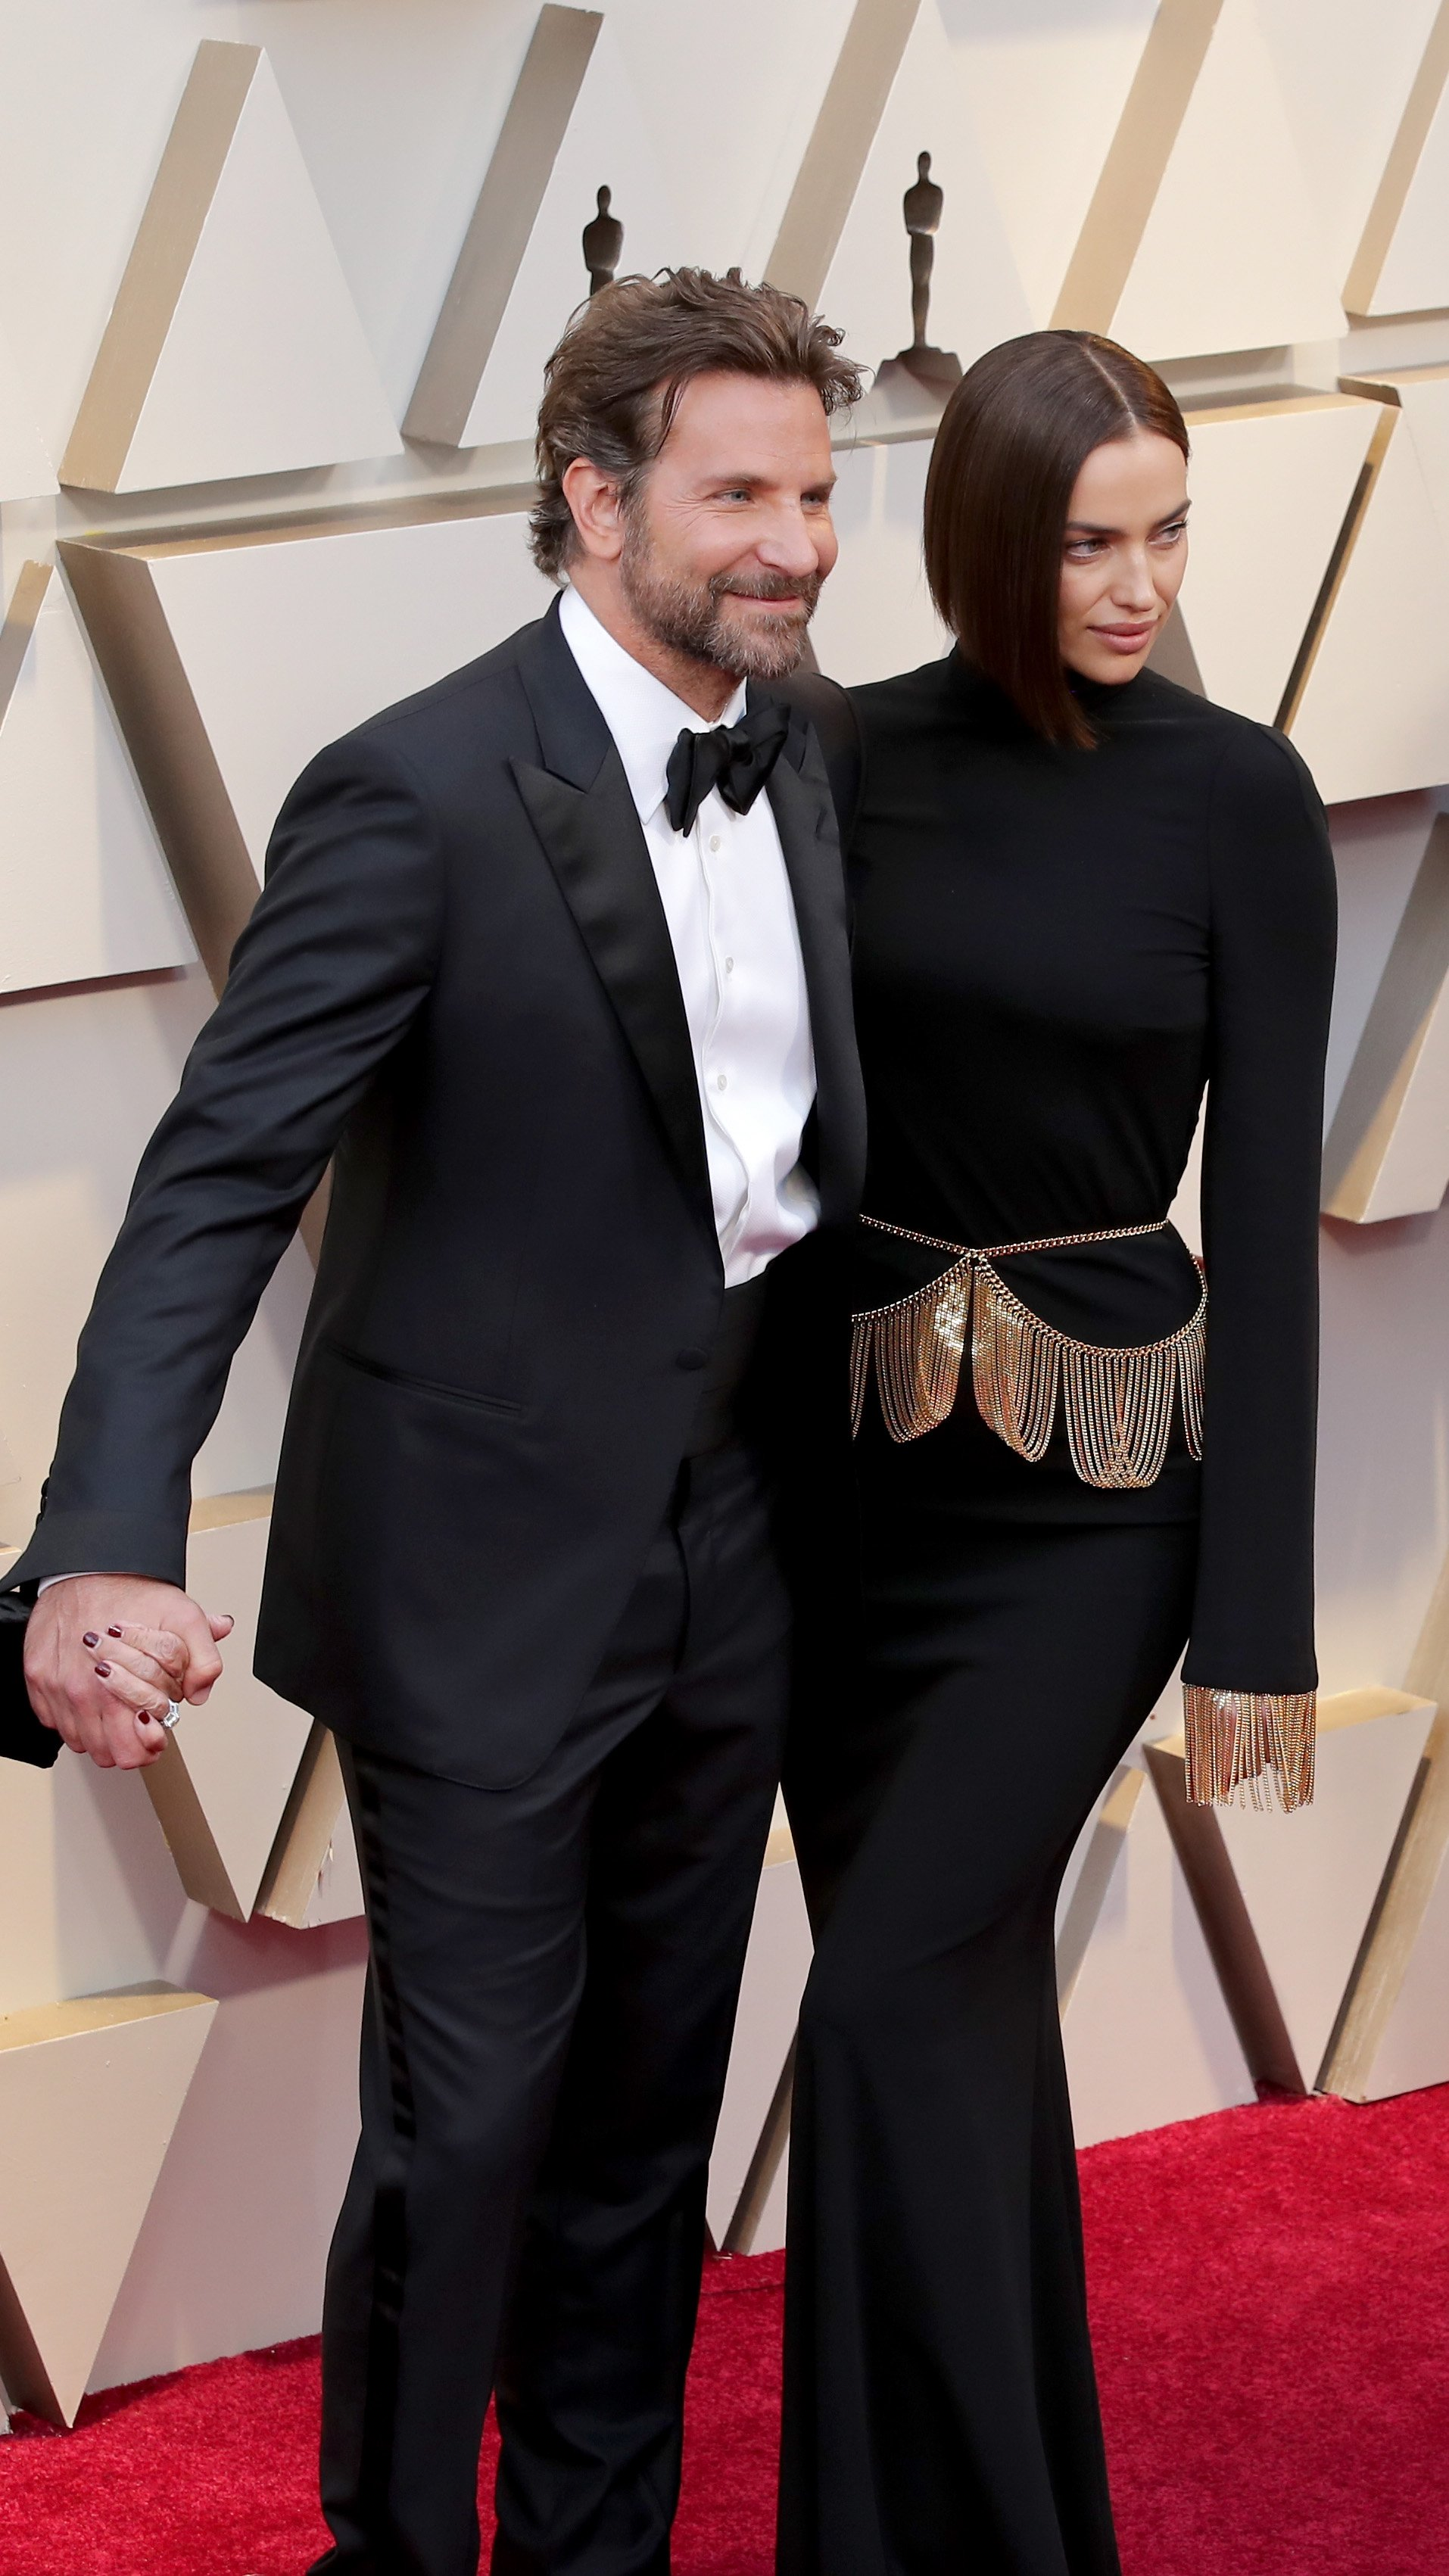 Irina Shayk and Bradley Cooper at the Oscars in 2019 | Photo: Getty Images